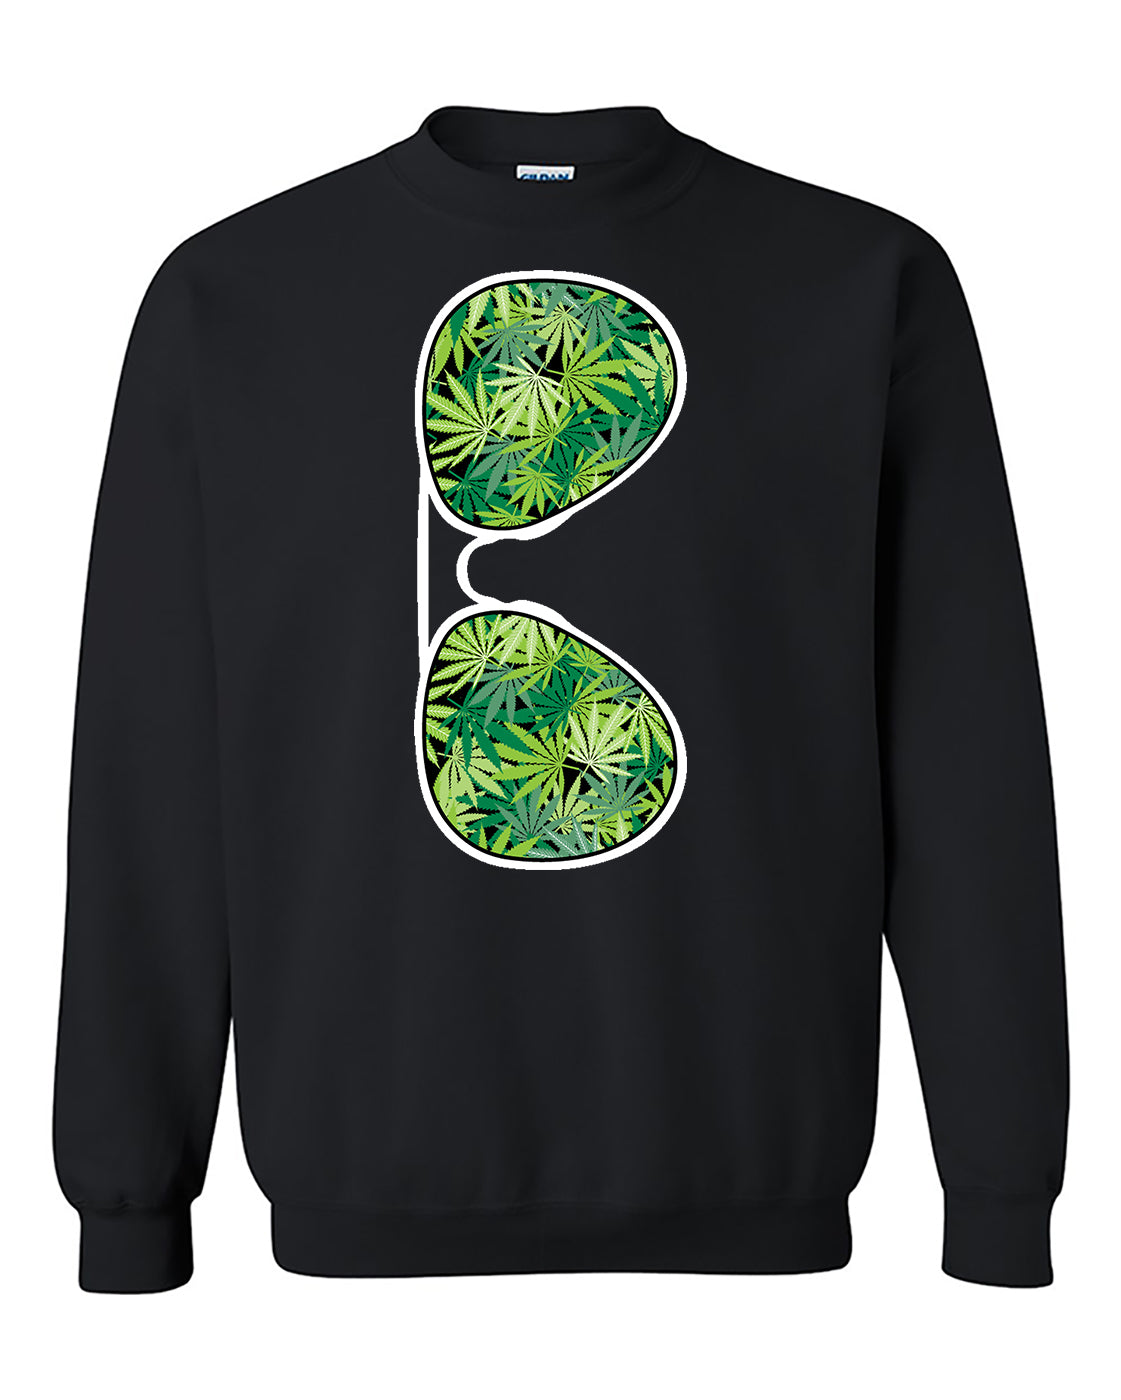 Sunglasses Weed Pattern 420 Marijuana Smoking Crewneck Sweater